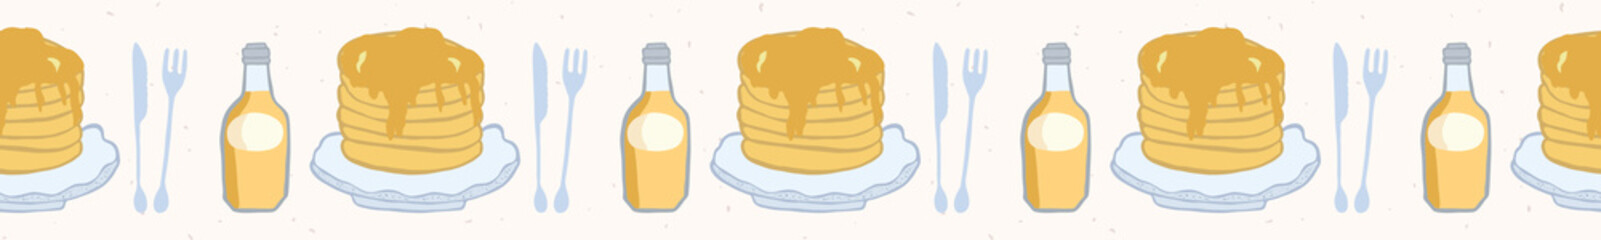 Cute vector pancake day breakfast illustration. Seamless repeating border. Hand drawn stack of delicious pancakes with maple syrup bottle, kawaii knife and fork. Food restaurant menu banner ribbon.